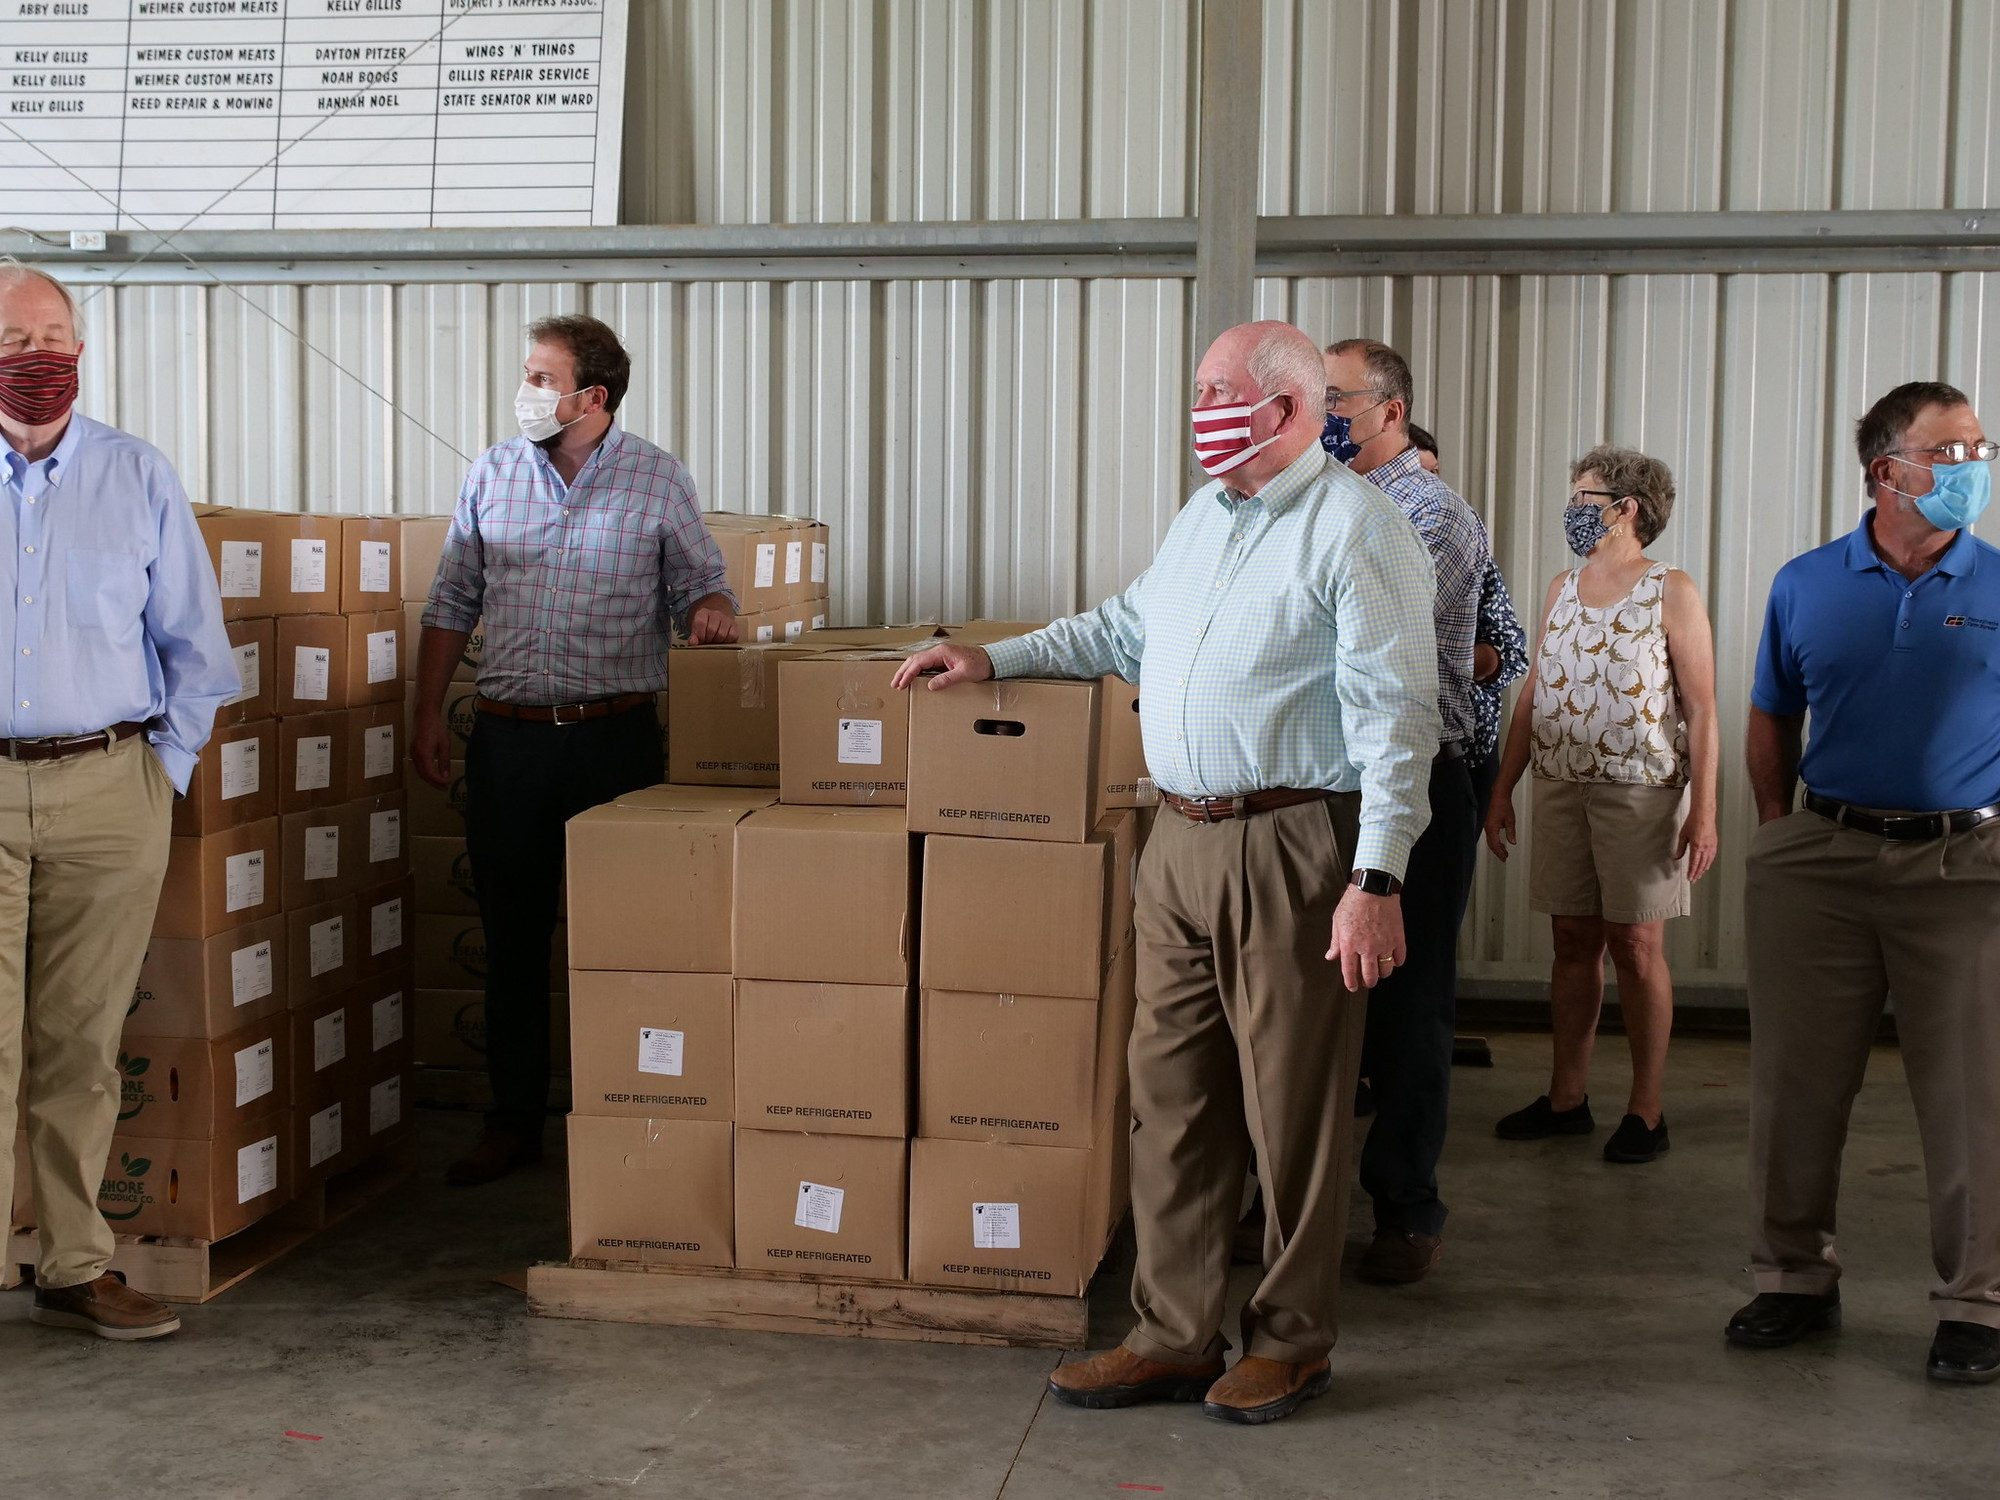 Sonny Perdue, standing with his left had rested on a stack of food boxes, participating in Farmers for Families event in Greensburg, PA.